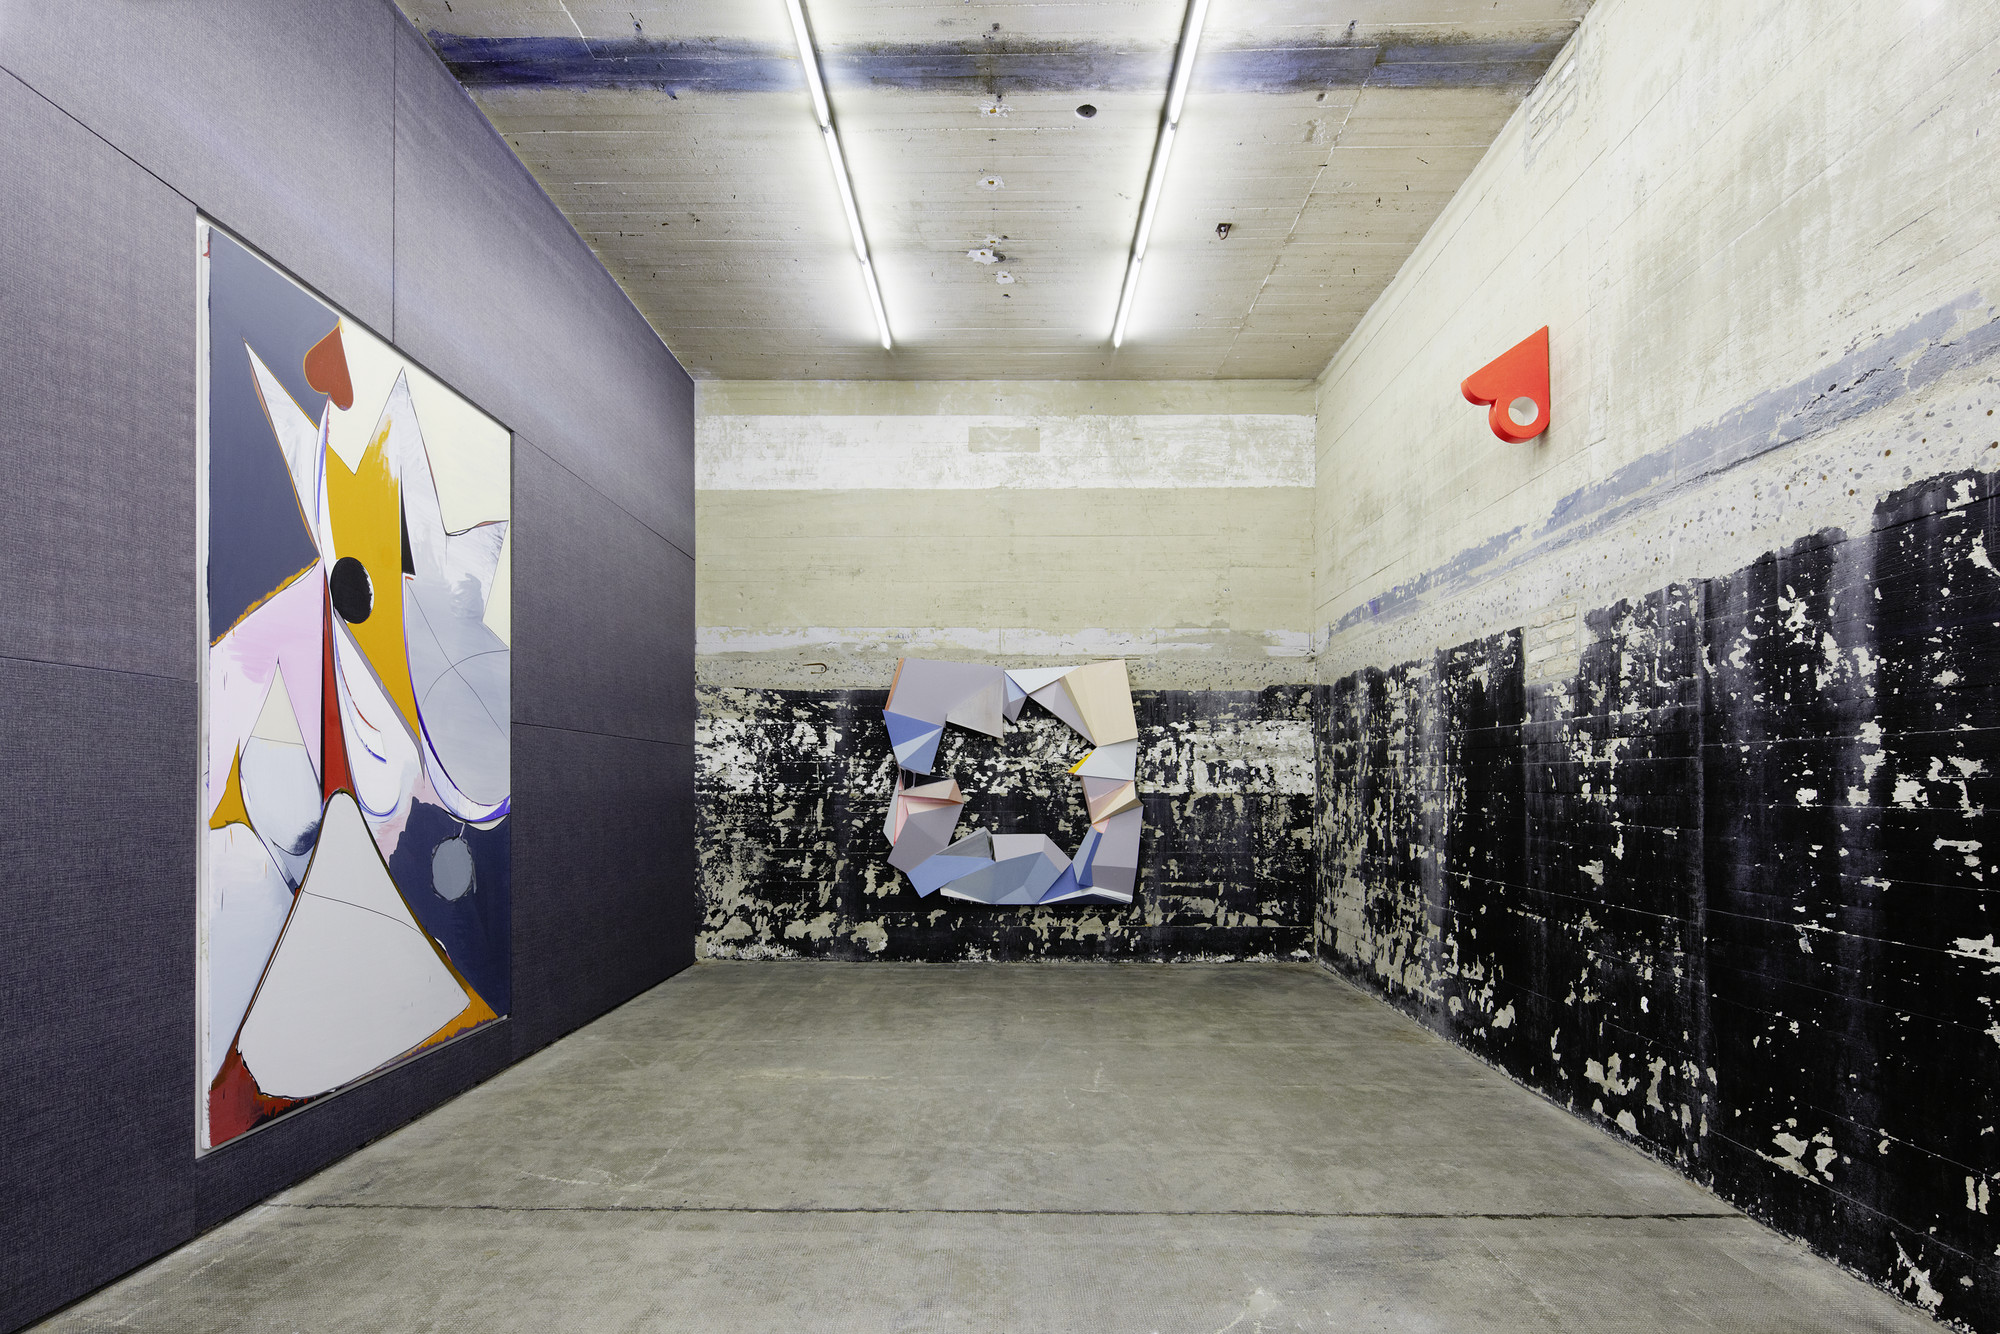 750 Cubic Meters of Extracted Concrete Turned This Nazi Bunker Into a Gallery & Home, © NOSHE